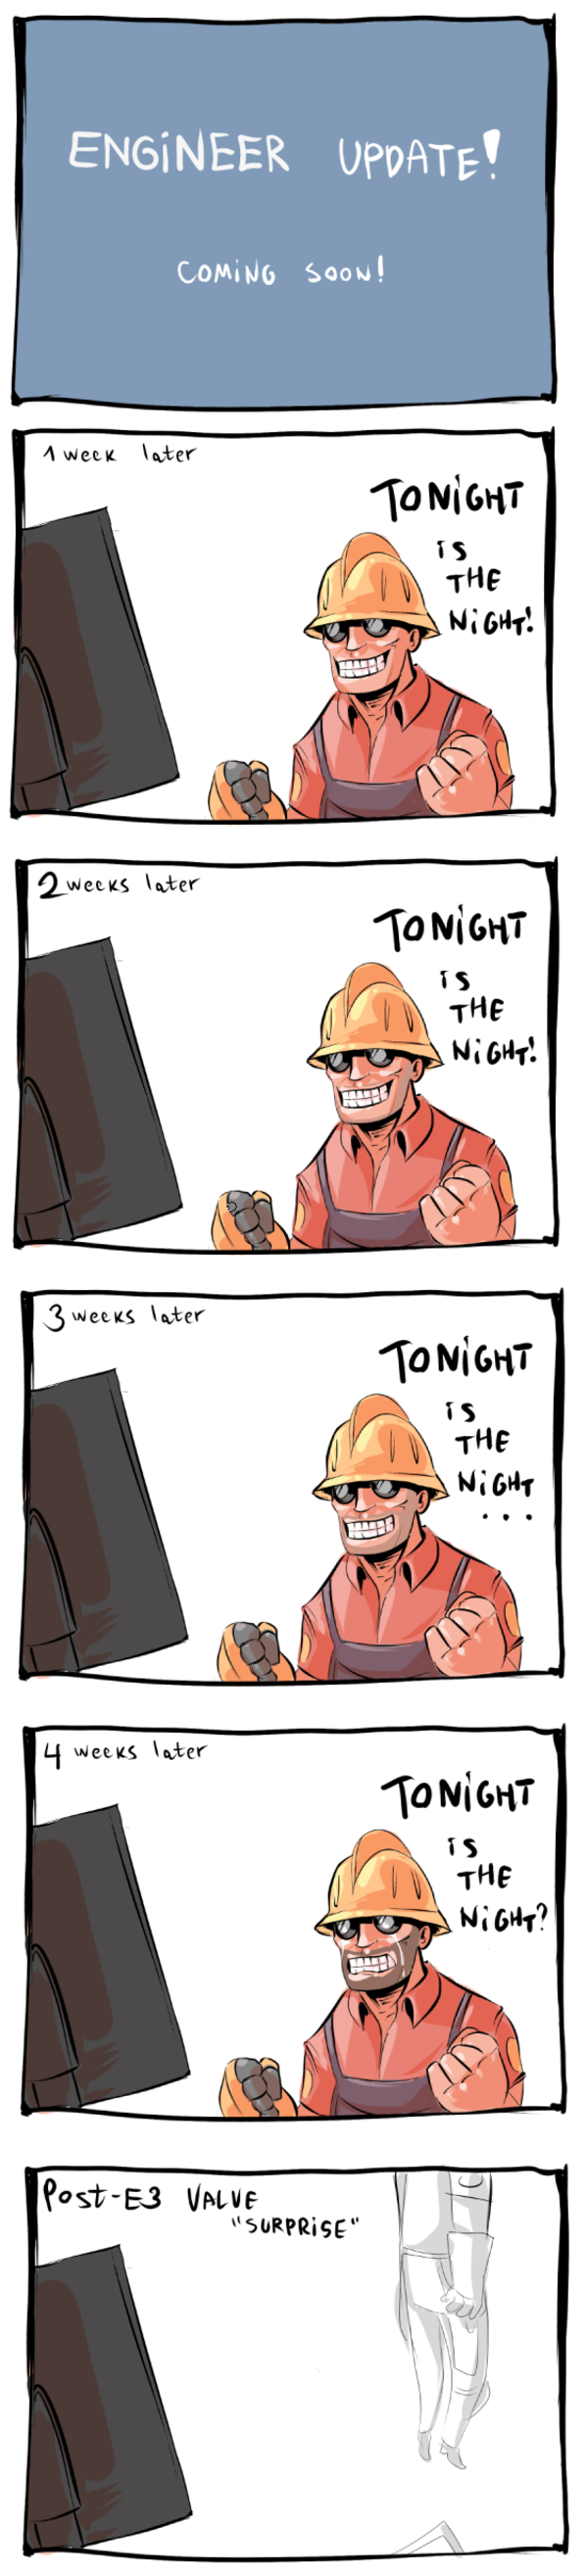 Valve_Time_by_ShwigityShwonShwei valve image gallery (sorted by views) know your meme